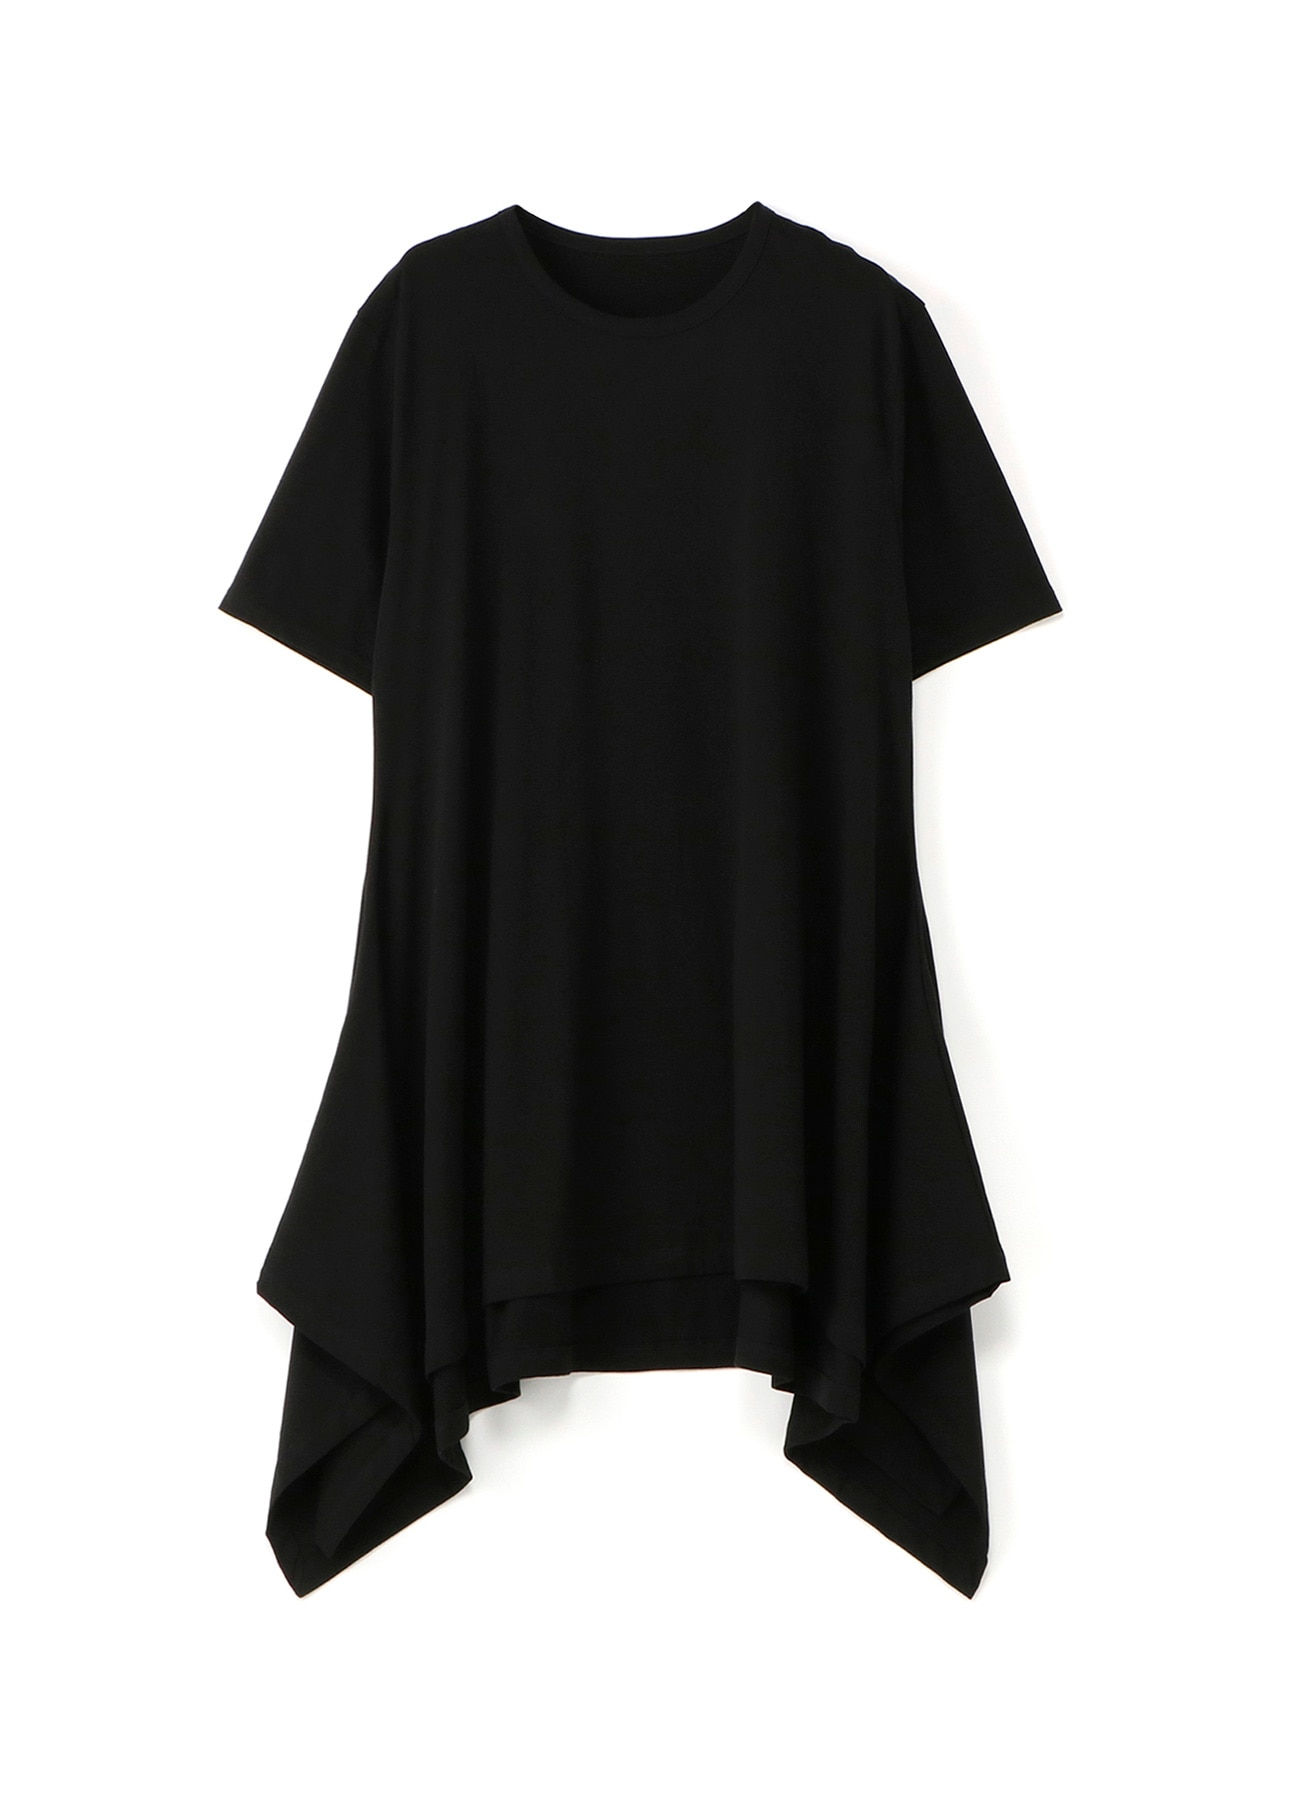 30/cotton Jersey Side Drape T